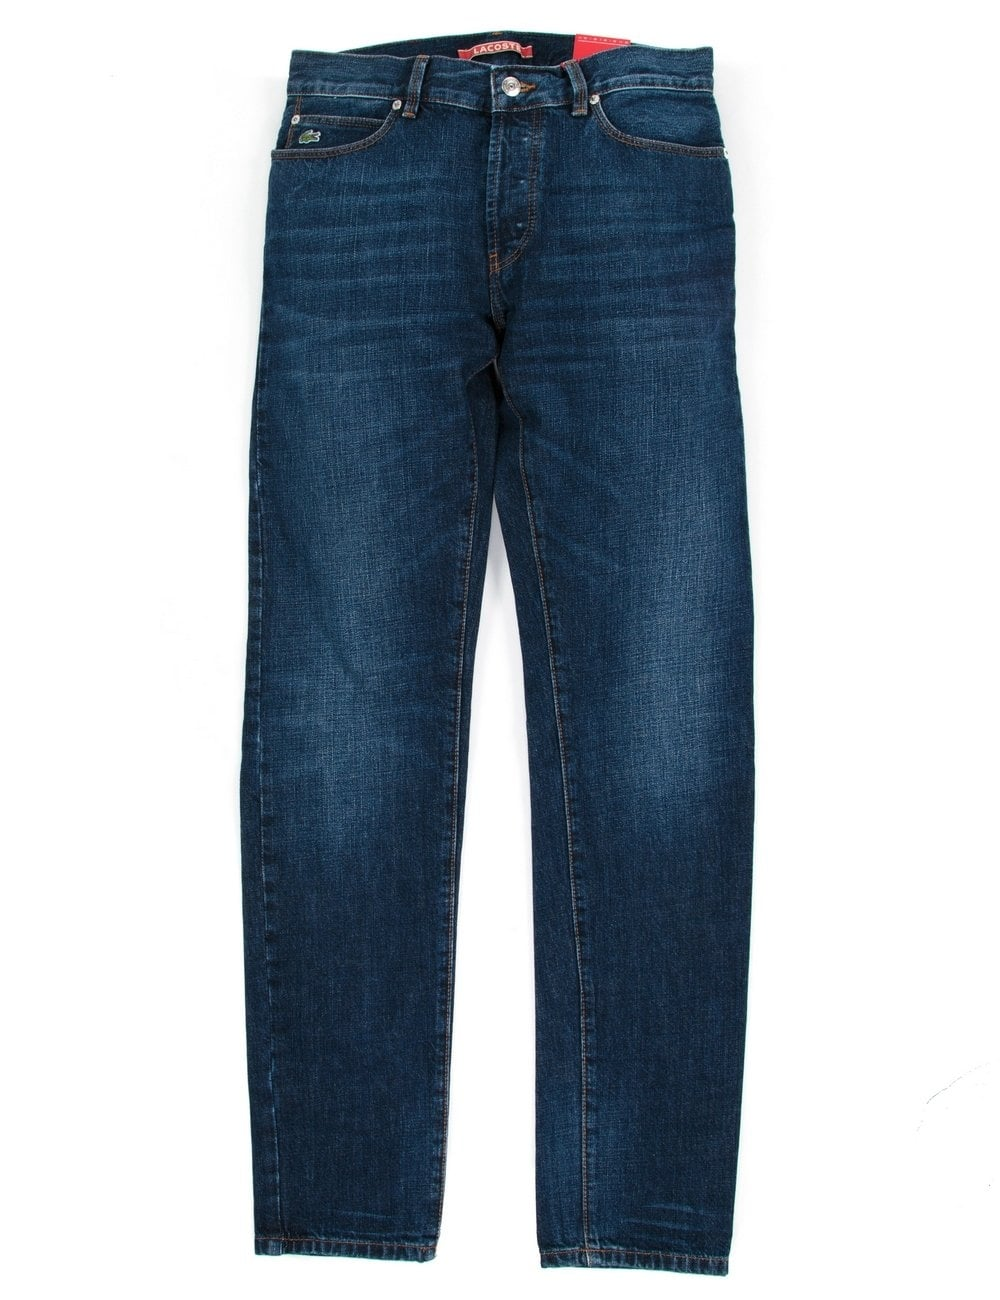 f8ad62316130 Lacoste Live Slim Fit Jeans - Medium Blue Brushed - Clothing from ...